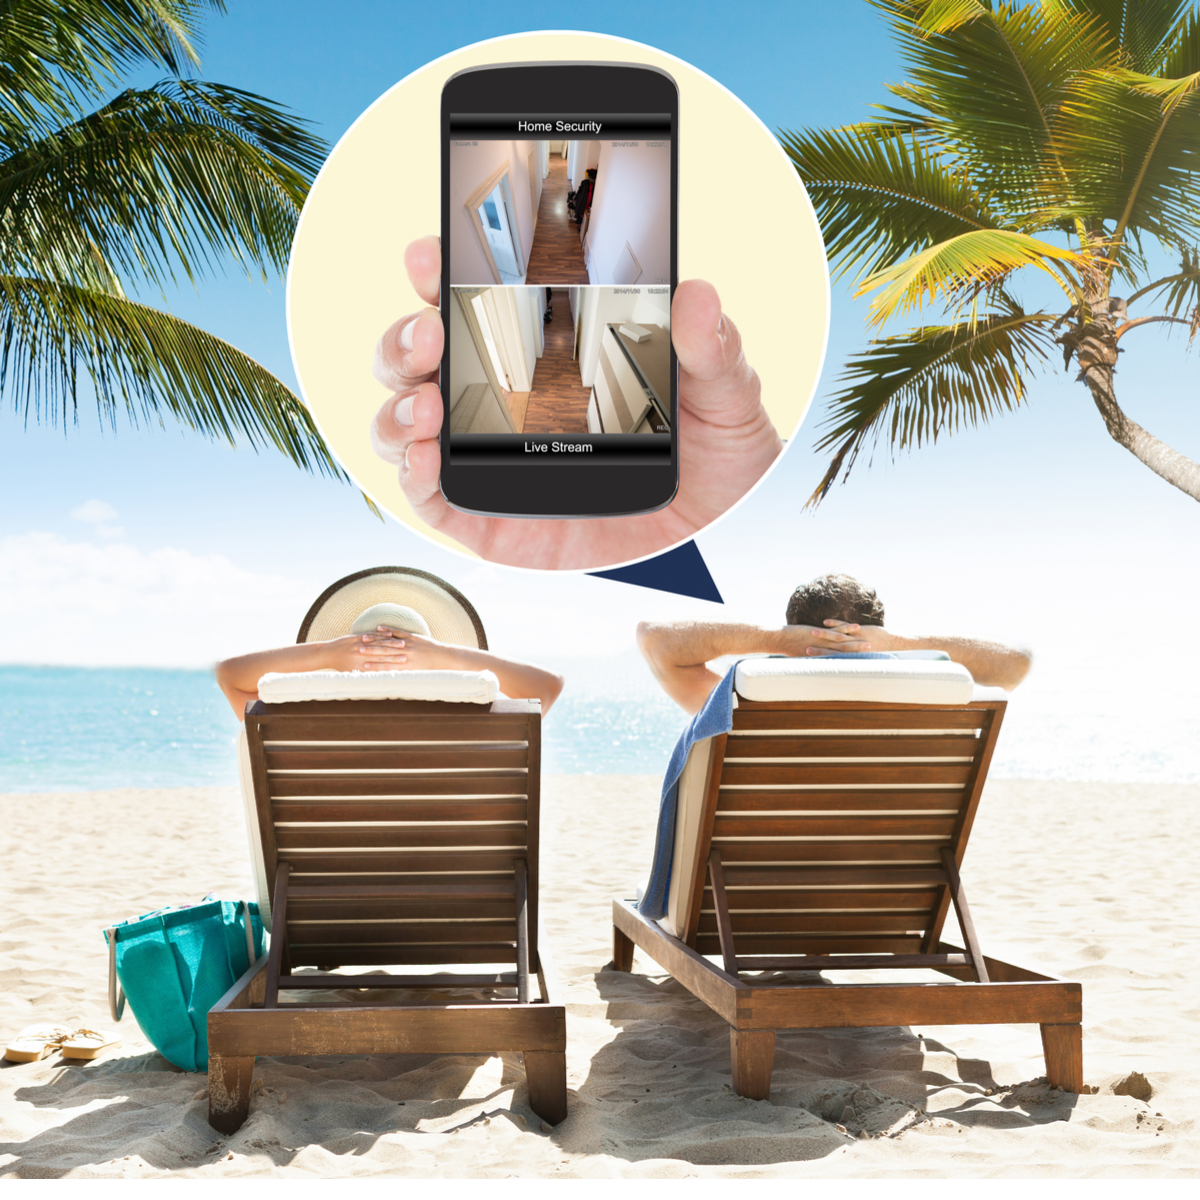 Never Miss a Thing! - With remote mobile viewing you'll always be close to home!